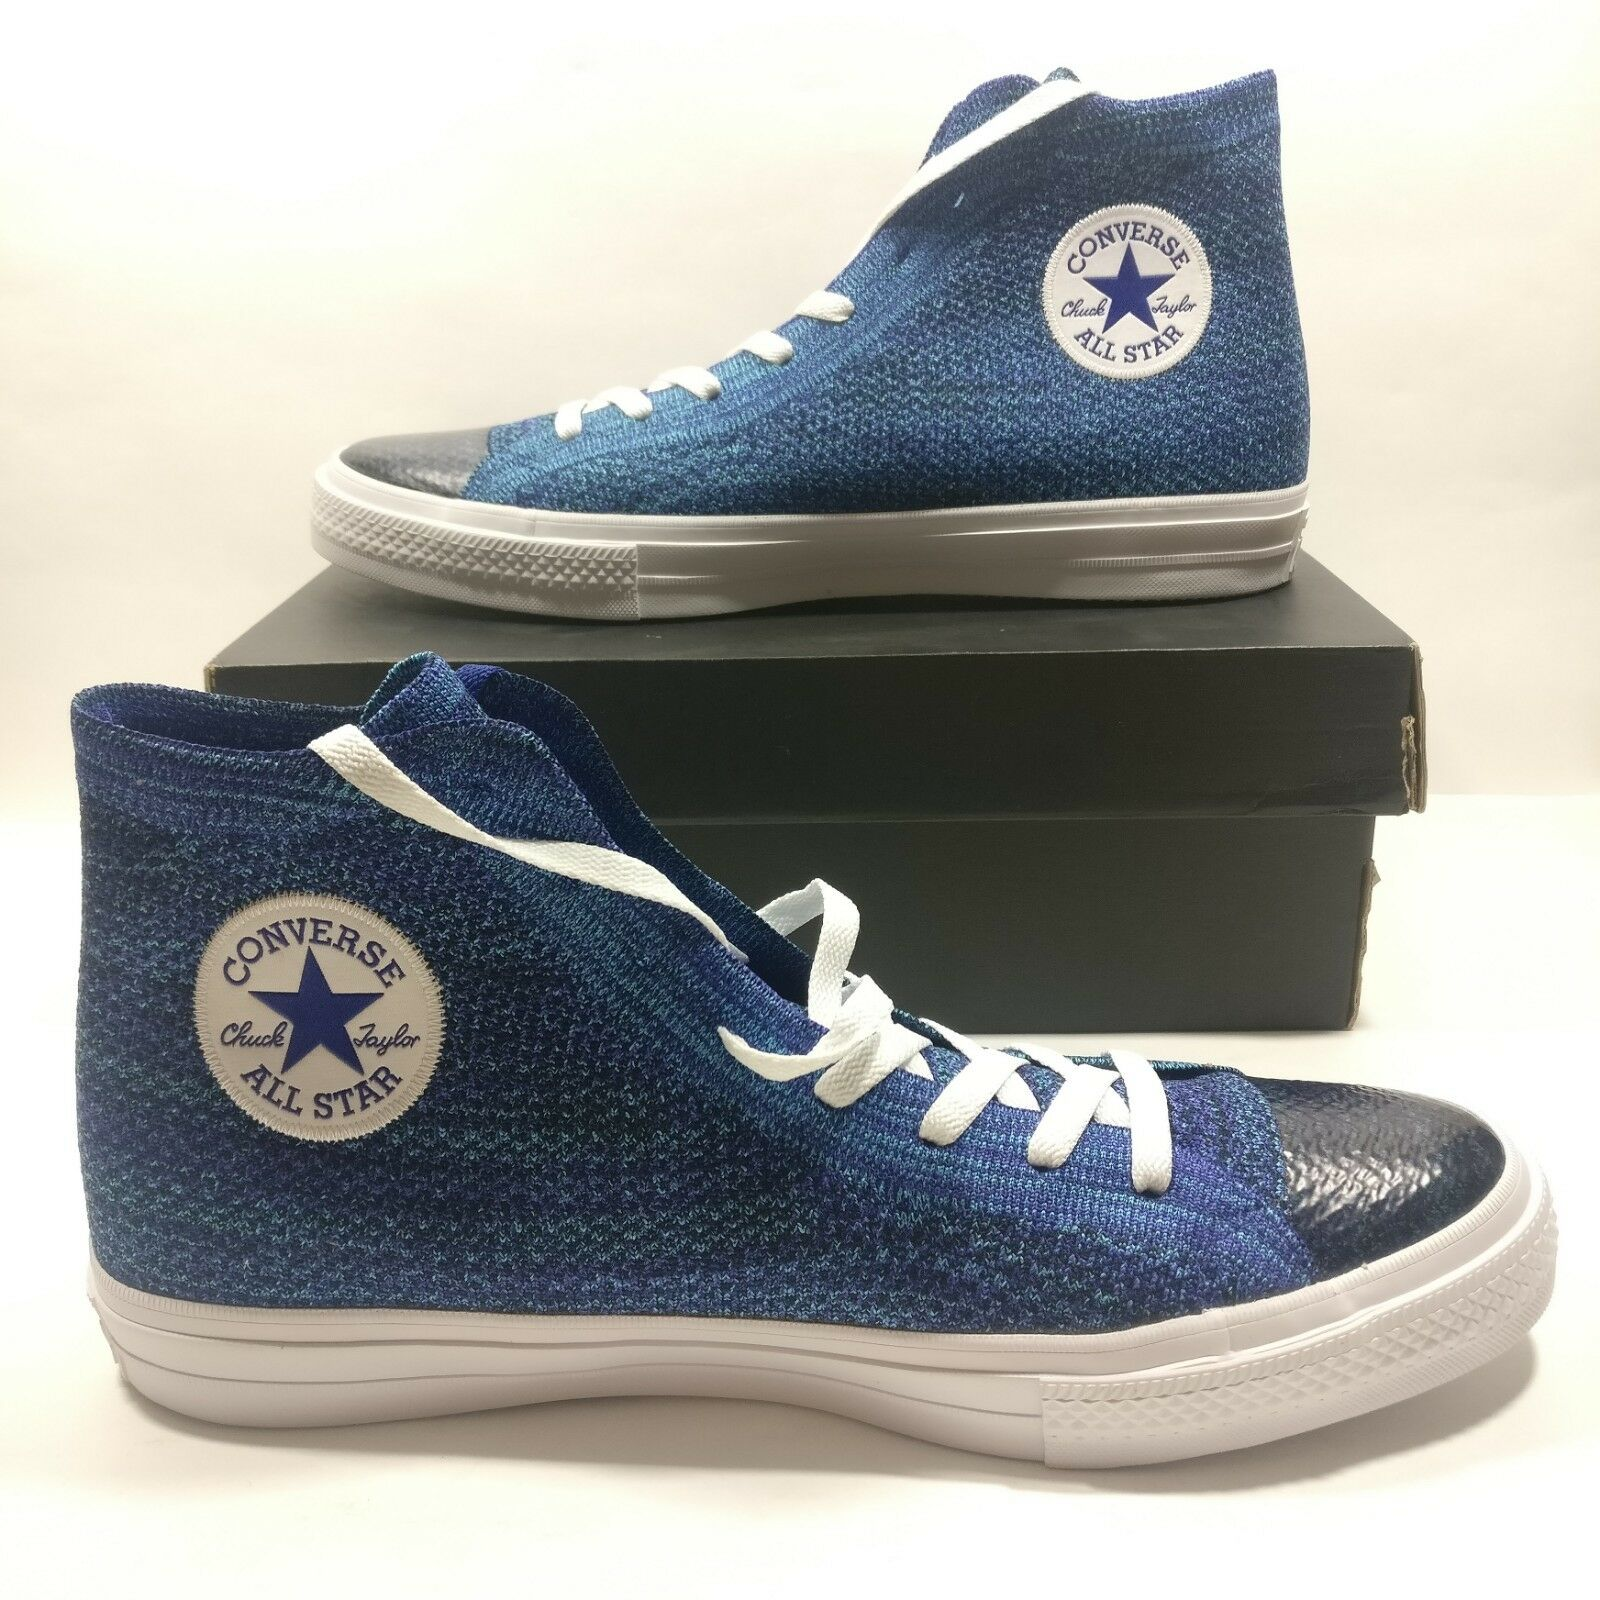 Mens Converse Chuck Taylor All Star Flyknit High Top Sneakers 157507C Size 12